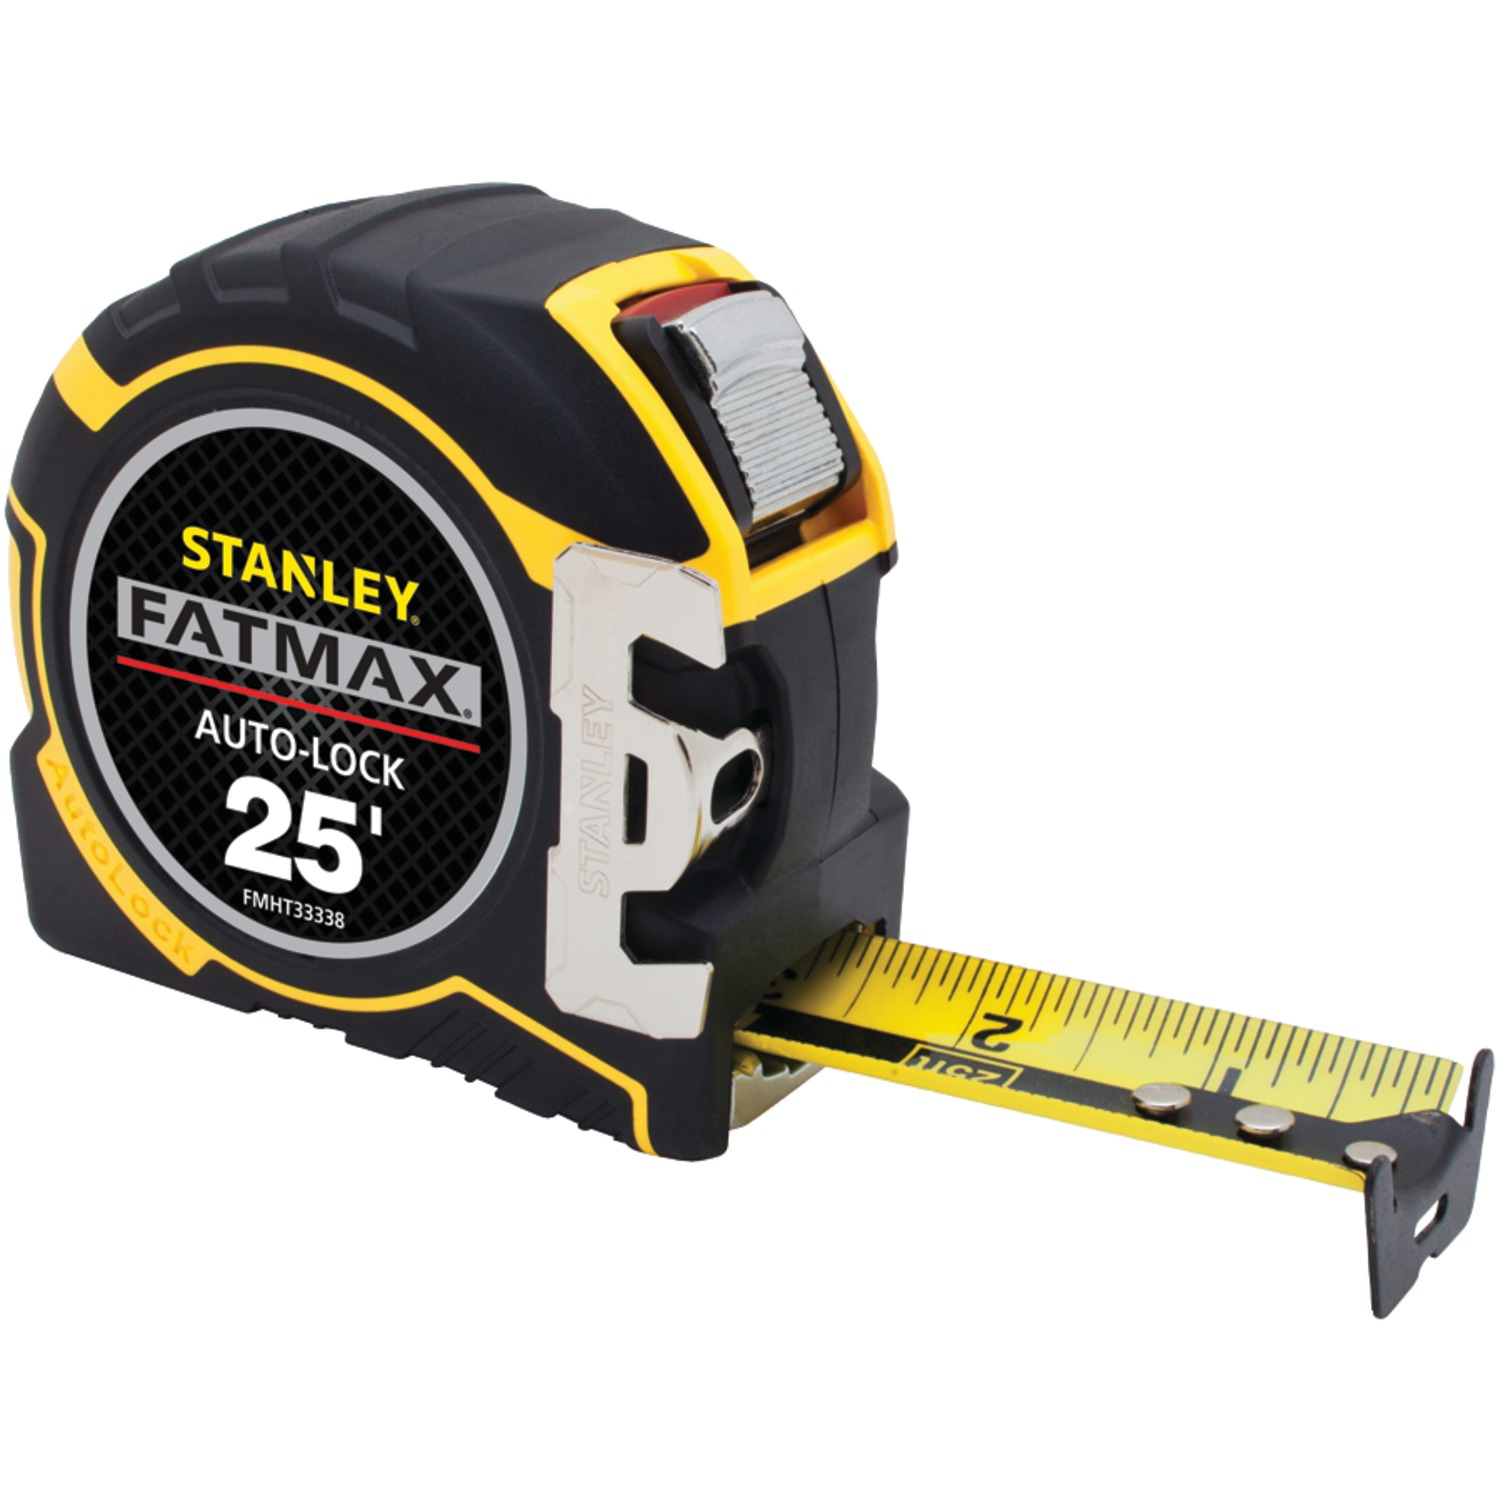 stanley fmht33338l fatmax r 25ft auto lock tape measure ebay. Black Bedroom Furniture Sets. Home Design Ideas